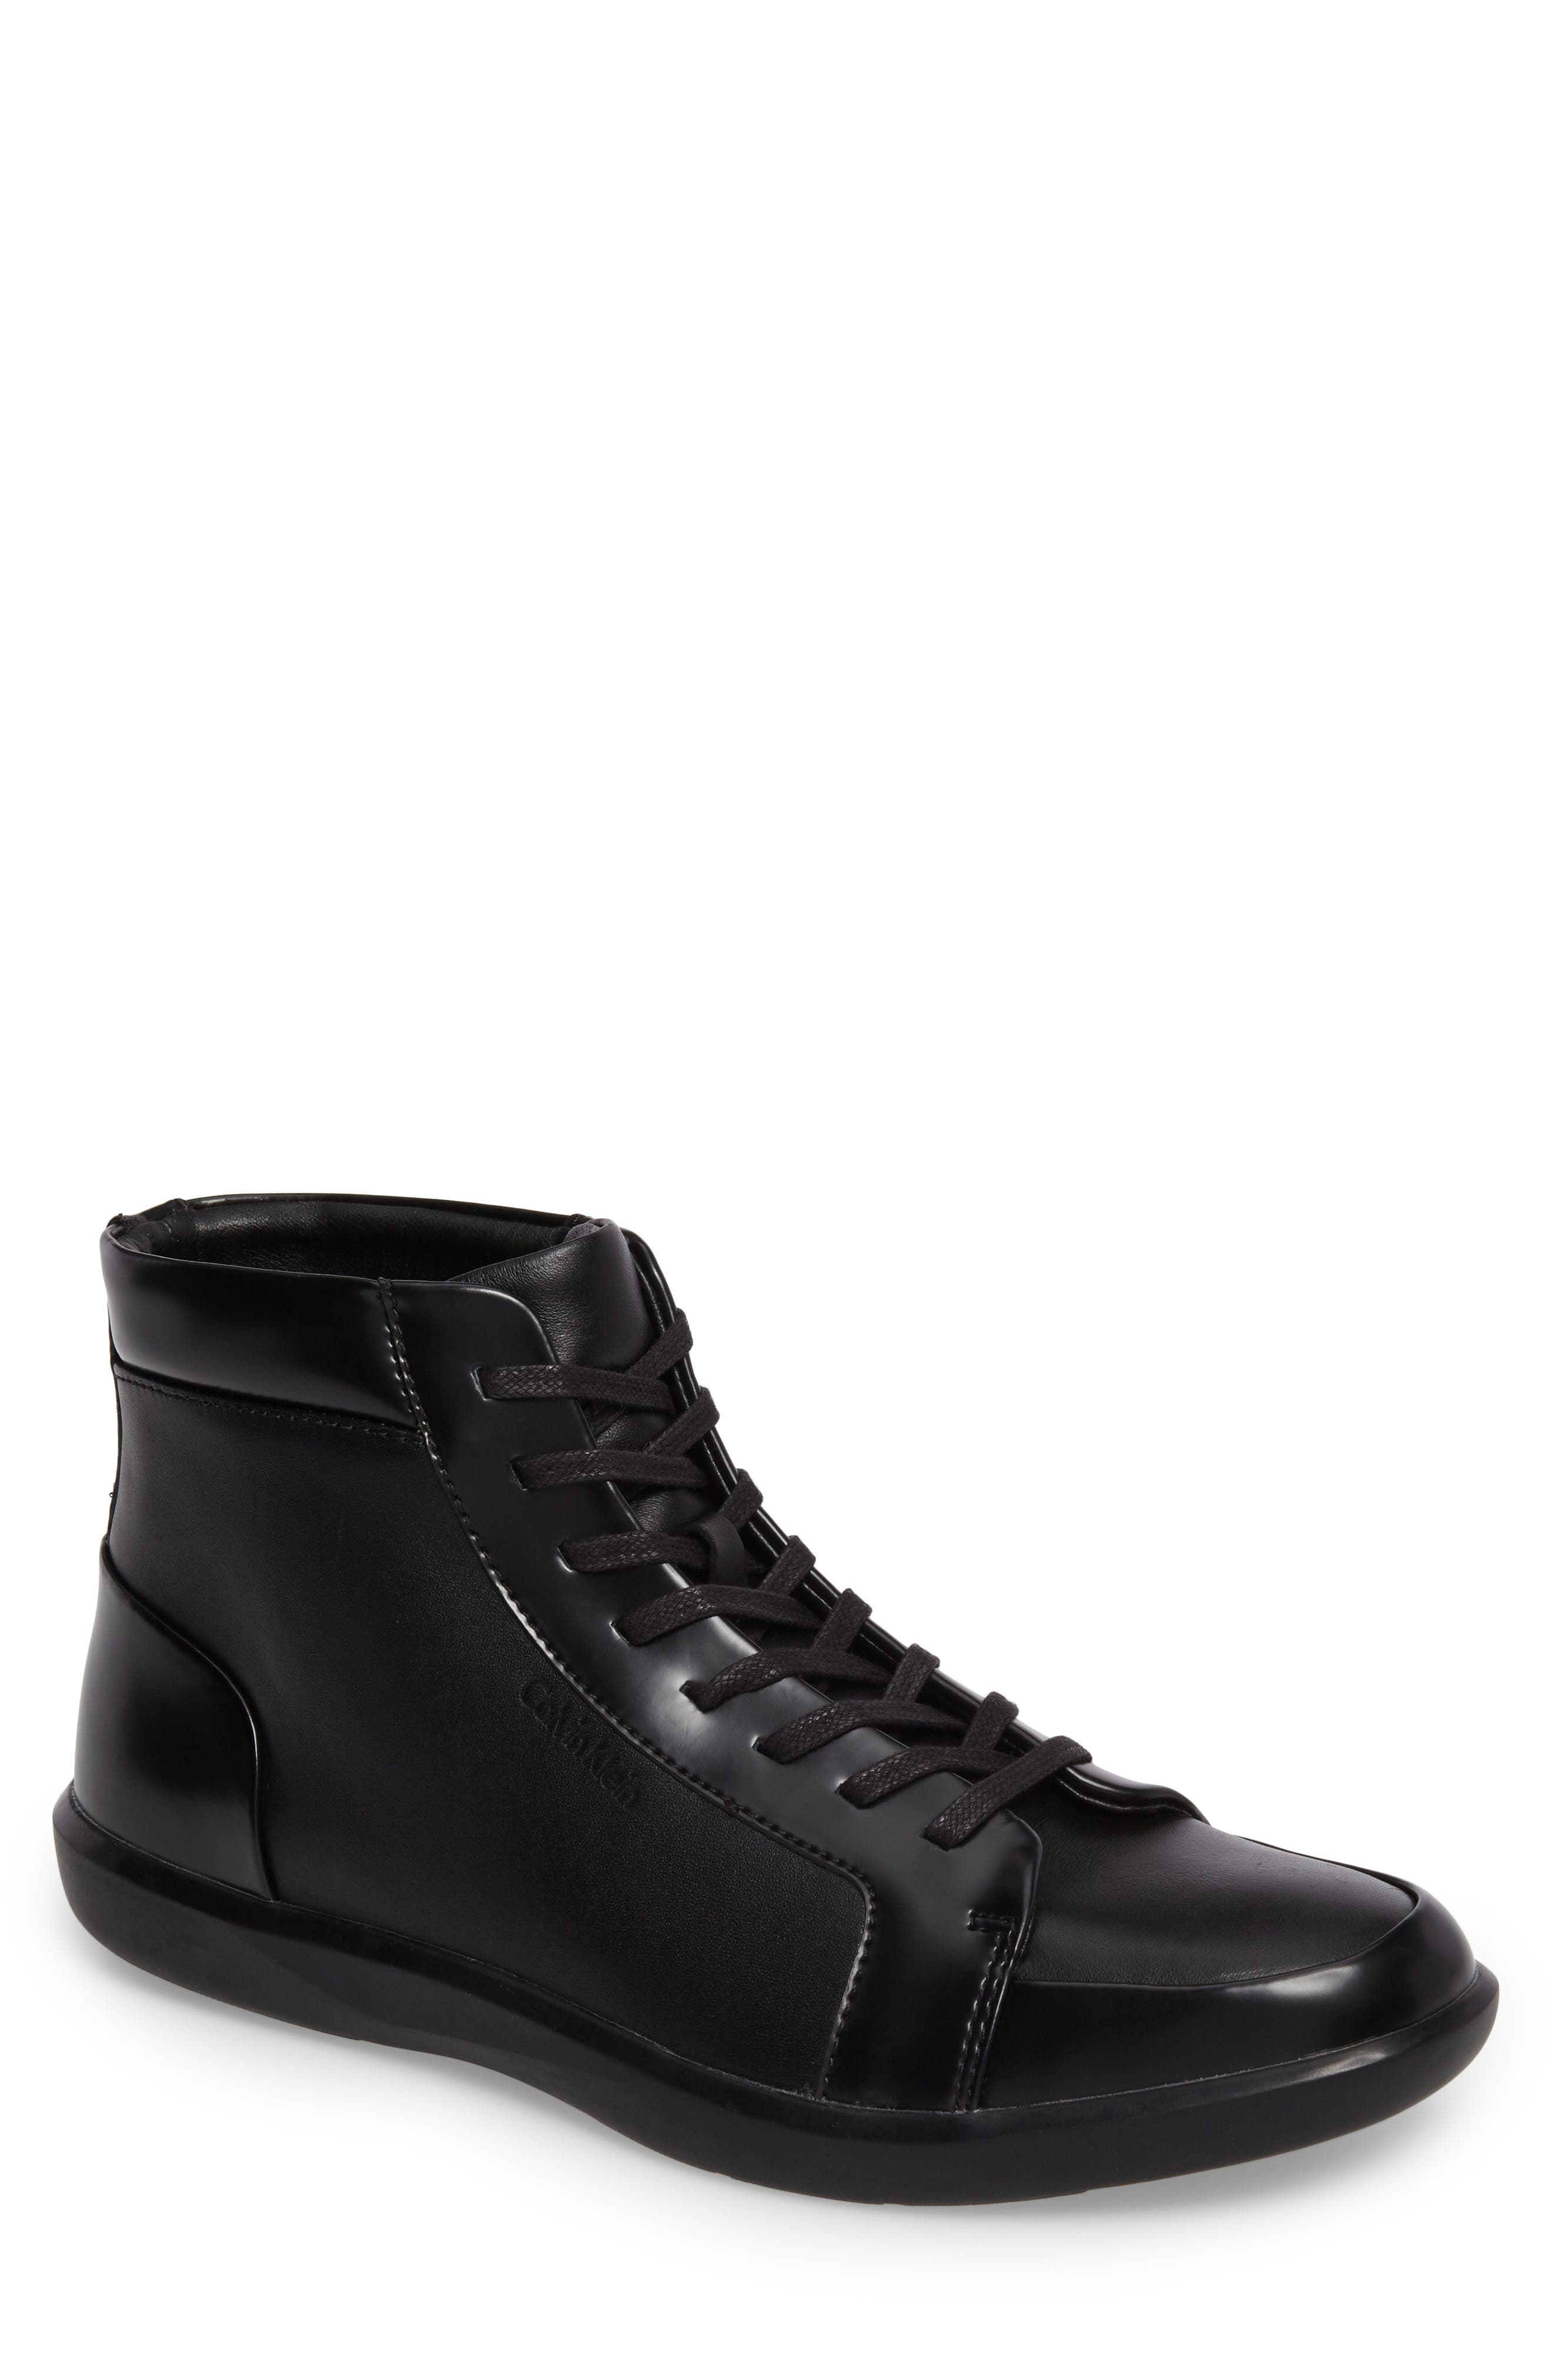 Malvern Sneaker,                         Main,                         color, Black